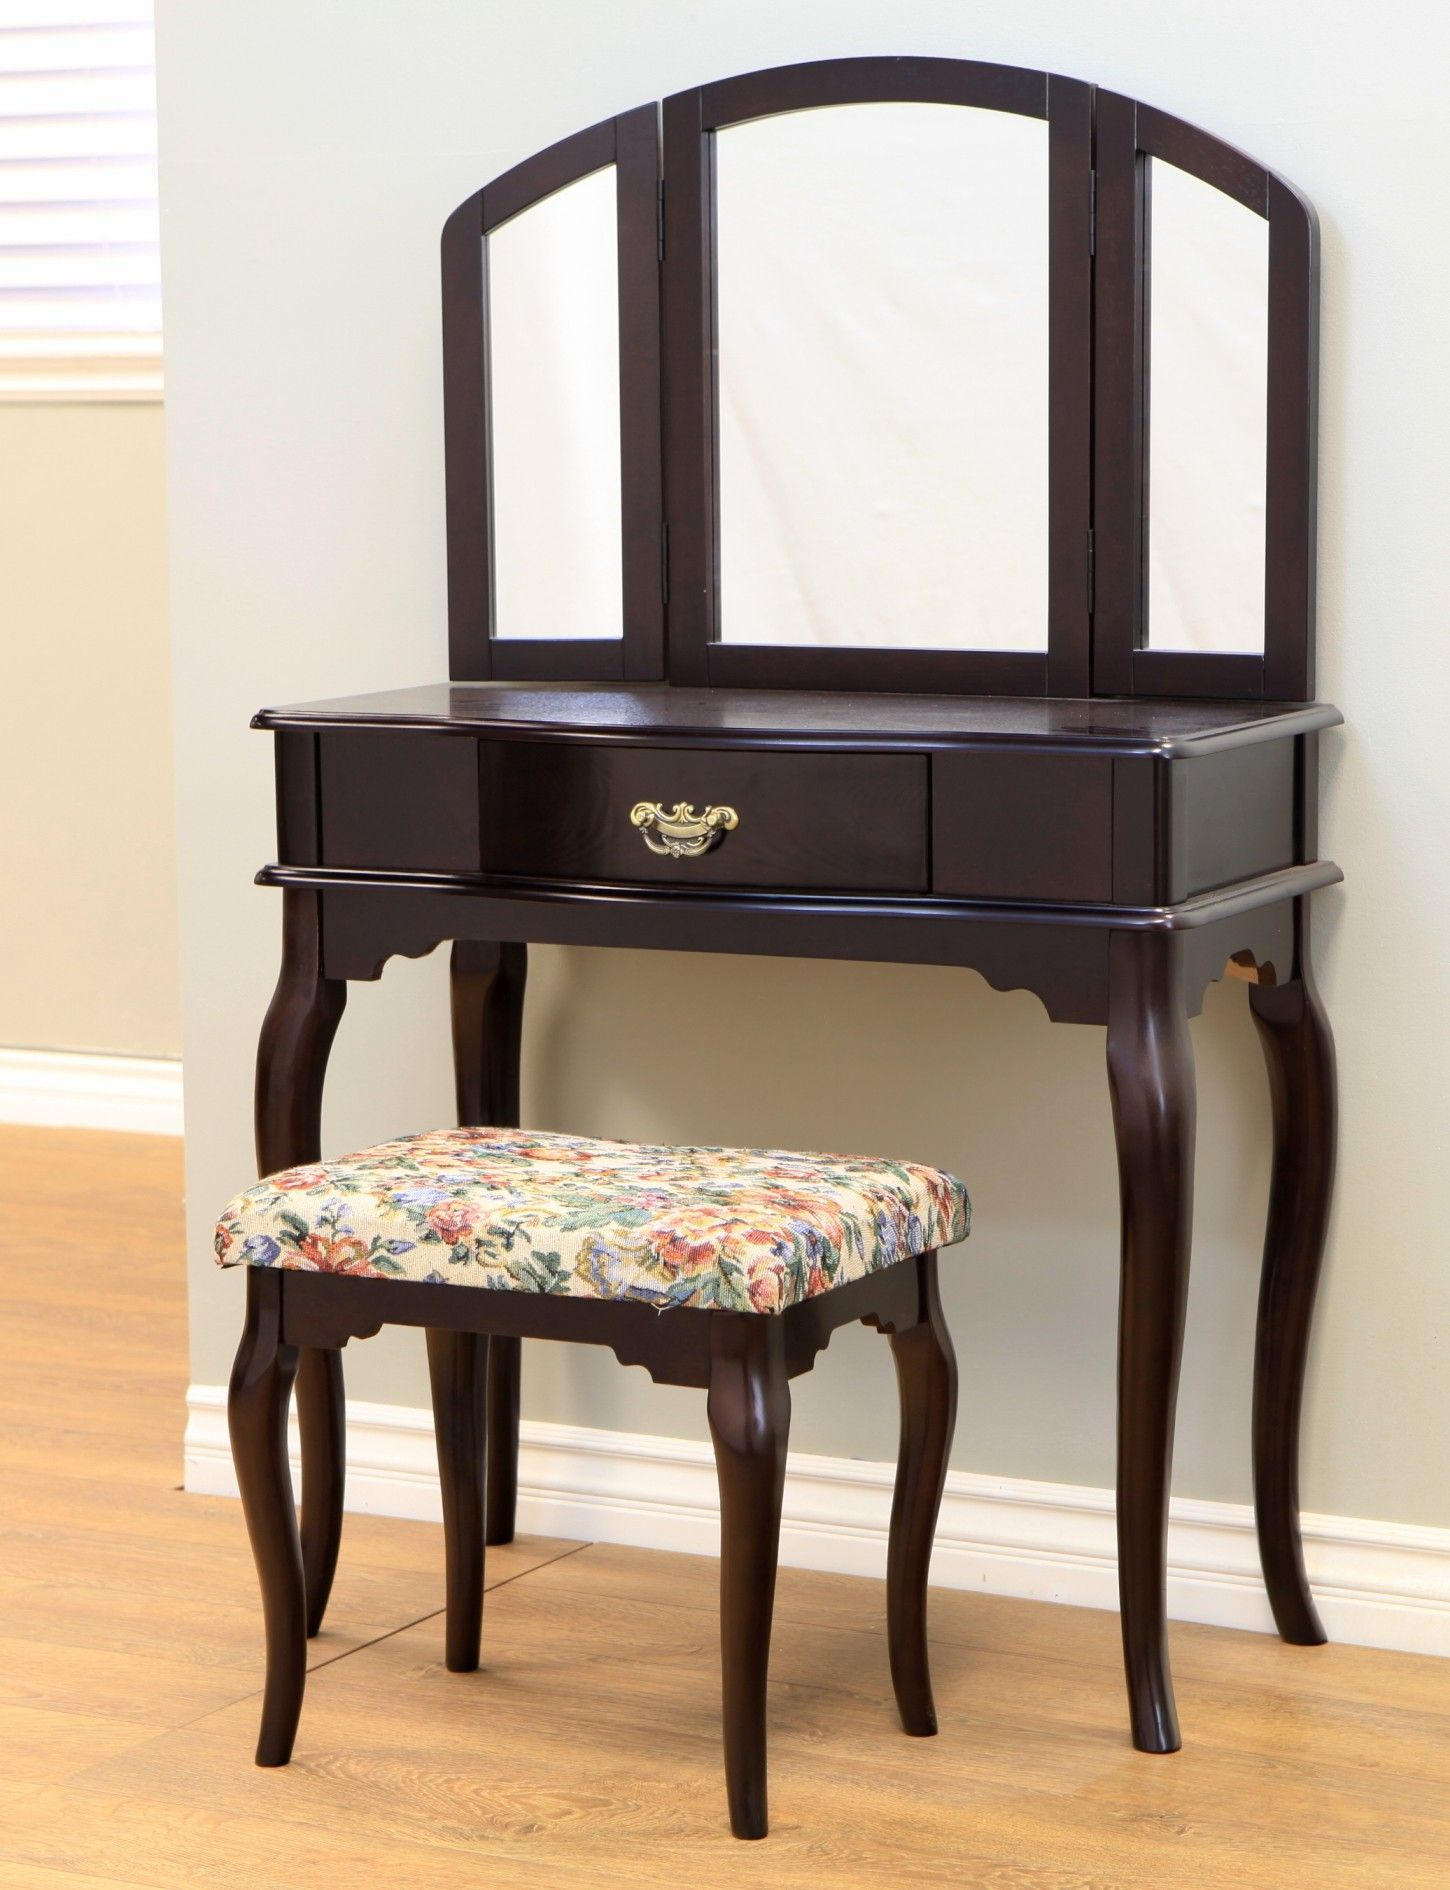 Mega Home Queen Anne Vanity Set With Mirror Furniture White Vanity Set Home Furnishings